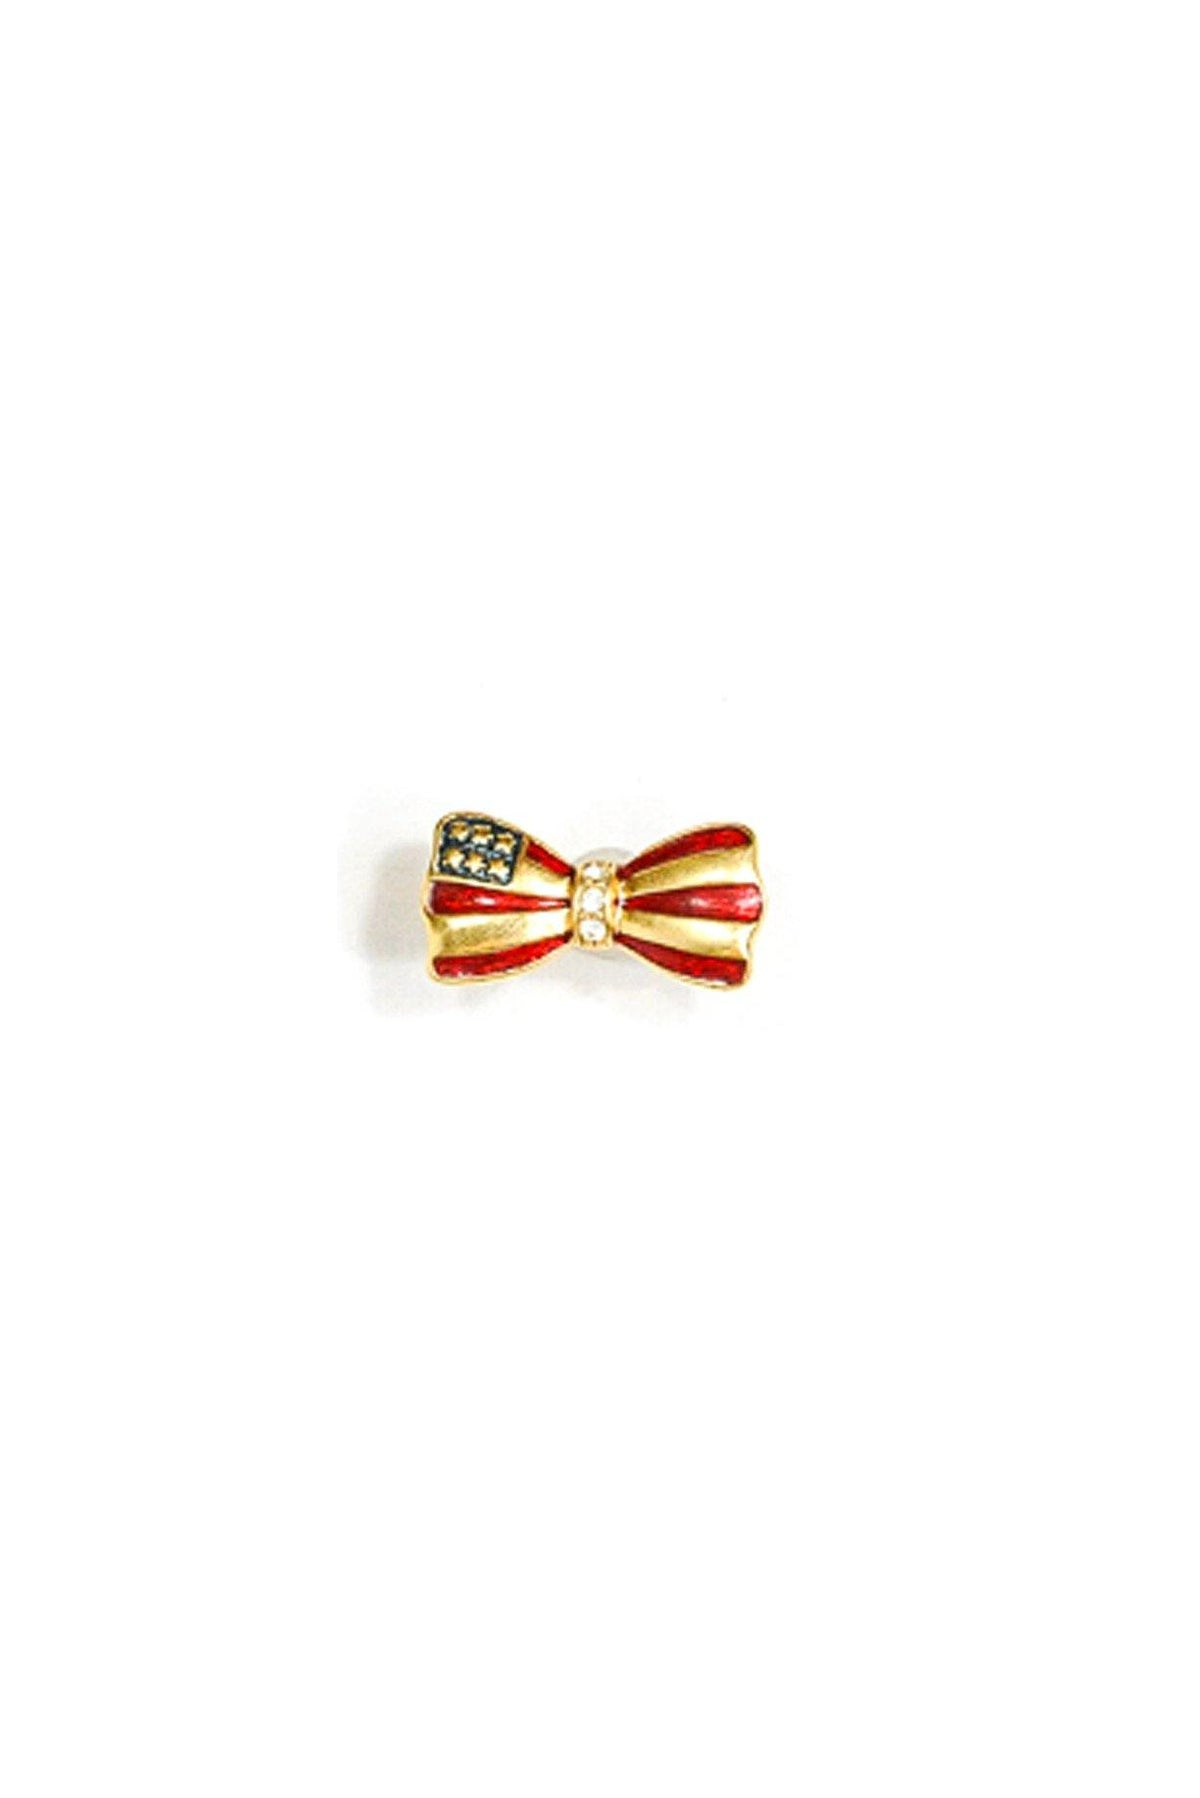 80's Vintage Mini American Flag Bow Pin